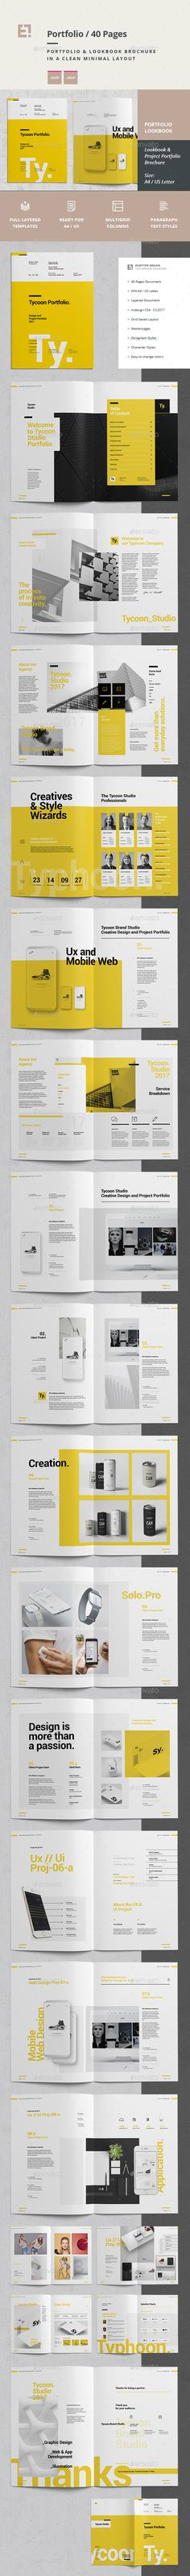 Project and Design Portfolio Brochure Template InDesign INDD - 36 Pages, A4 and US Letter Size